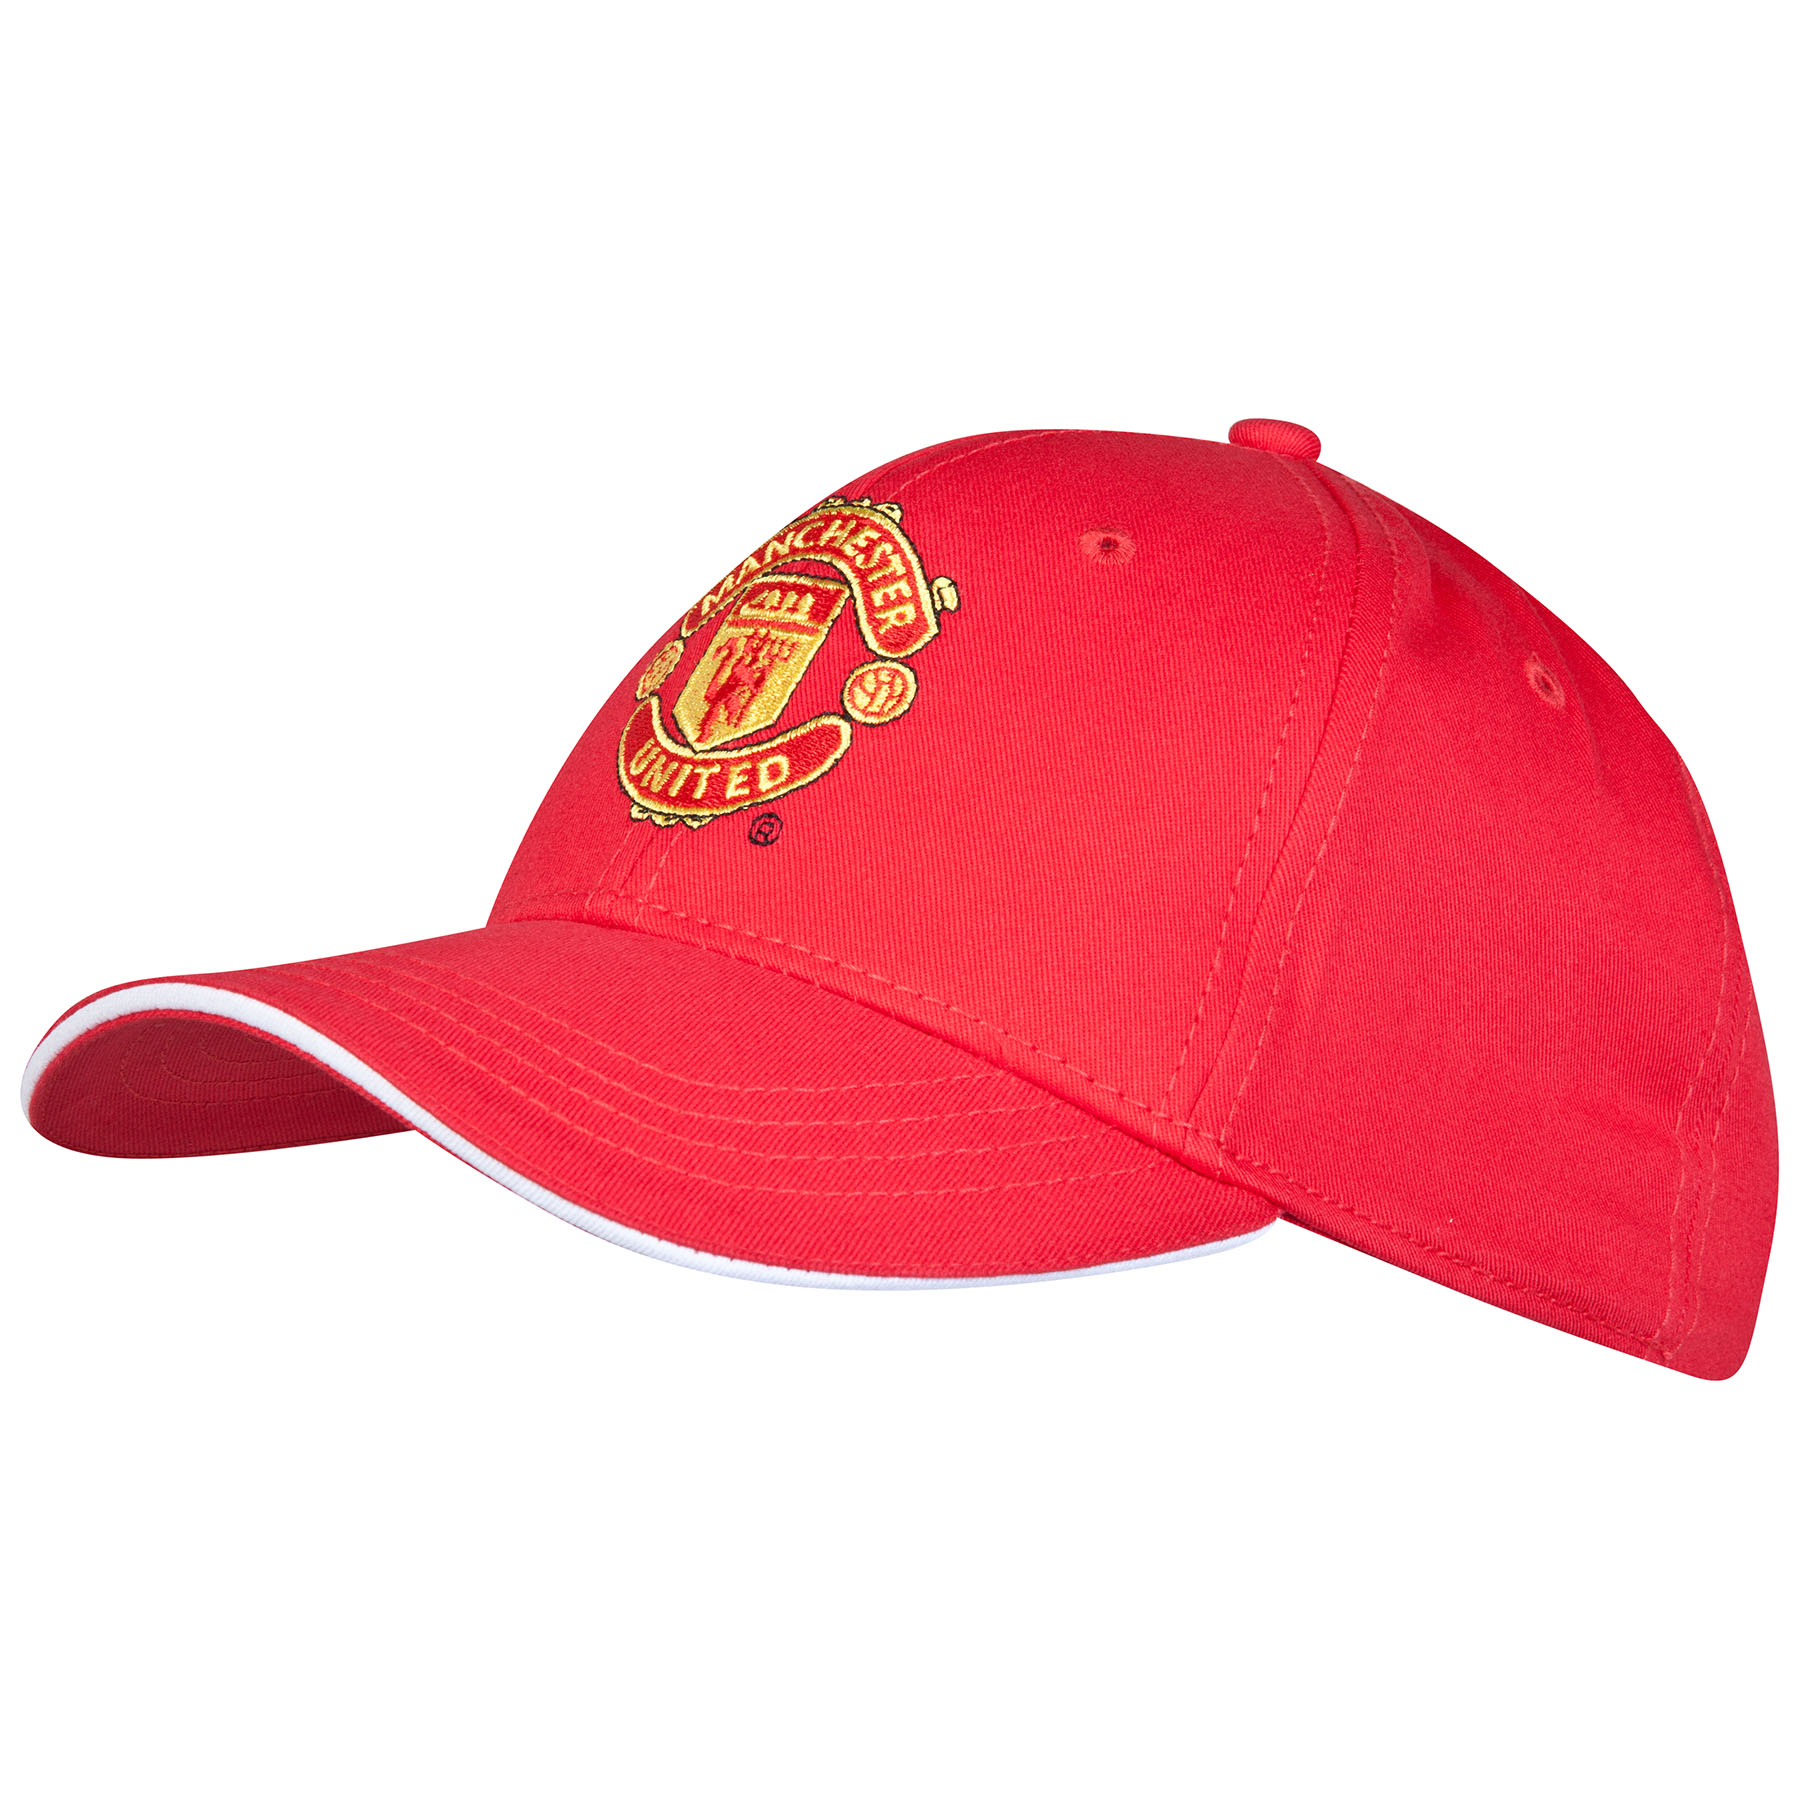 Manchester United Core Crest Cap - Red - Adult